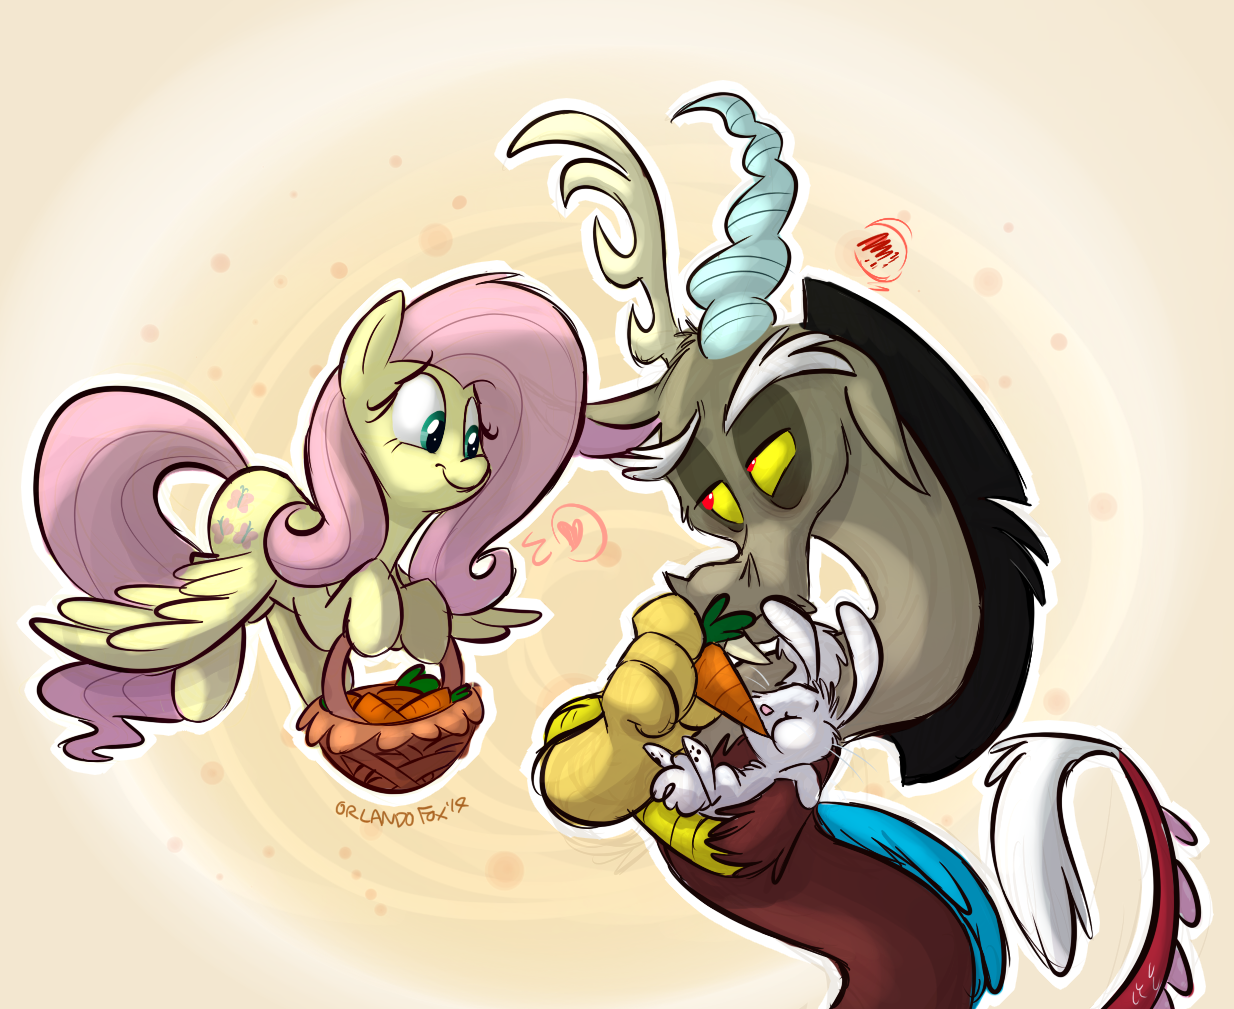 'Only for you, Fluttershy...'